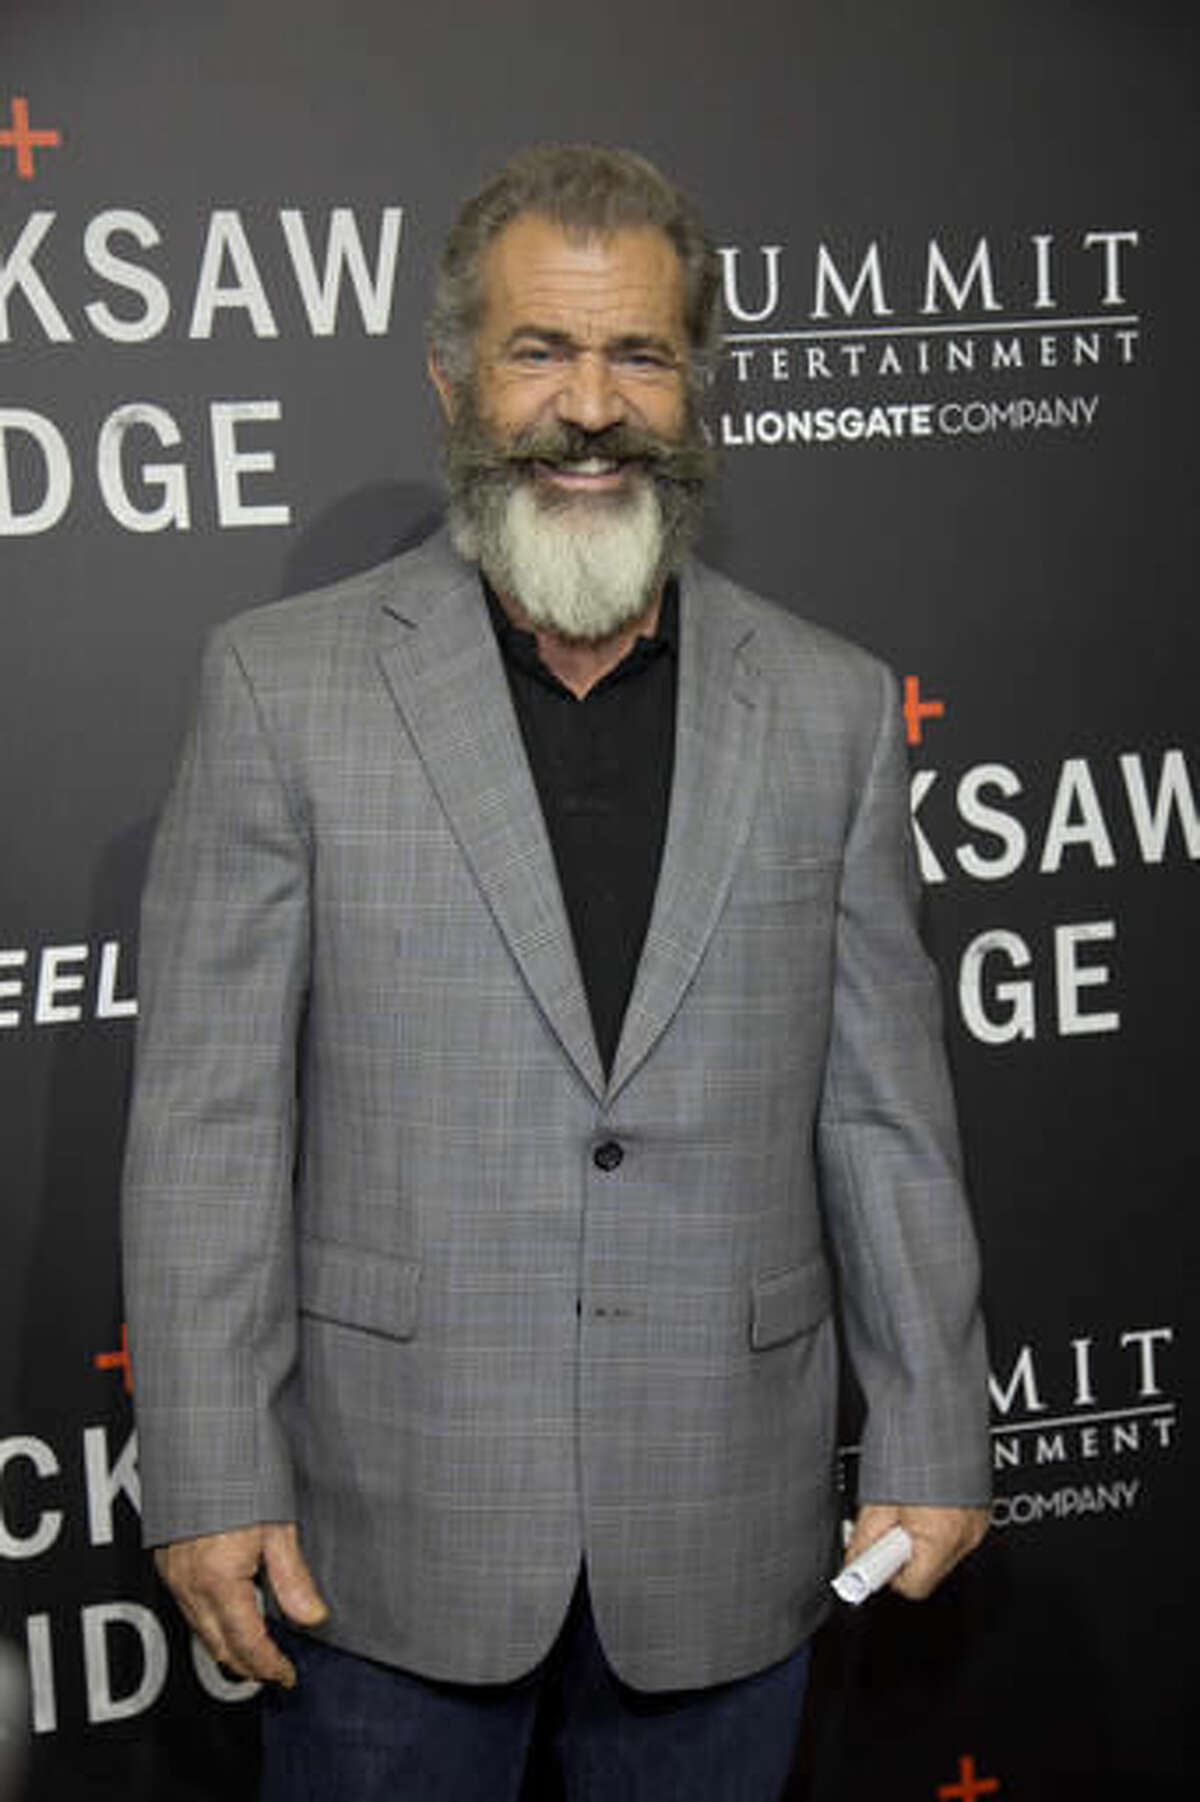 """Director Mel Gibson poses on the red carpet for the premiere of his movie """"Hacksaw Ridge,"""" at The National WWII Museum, in New Orleans, Wednesday, Oct. 26, 2016. The film depicts the life of World War II medic and Congressional Medal of Honor recipient Desmond Doss. (AP Photo/Max Becherer)"""